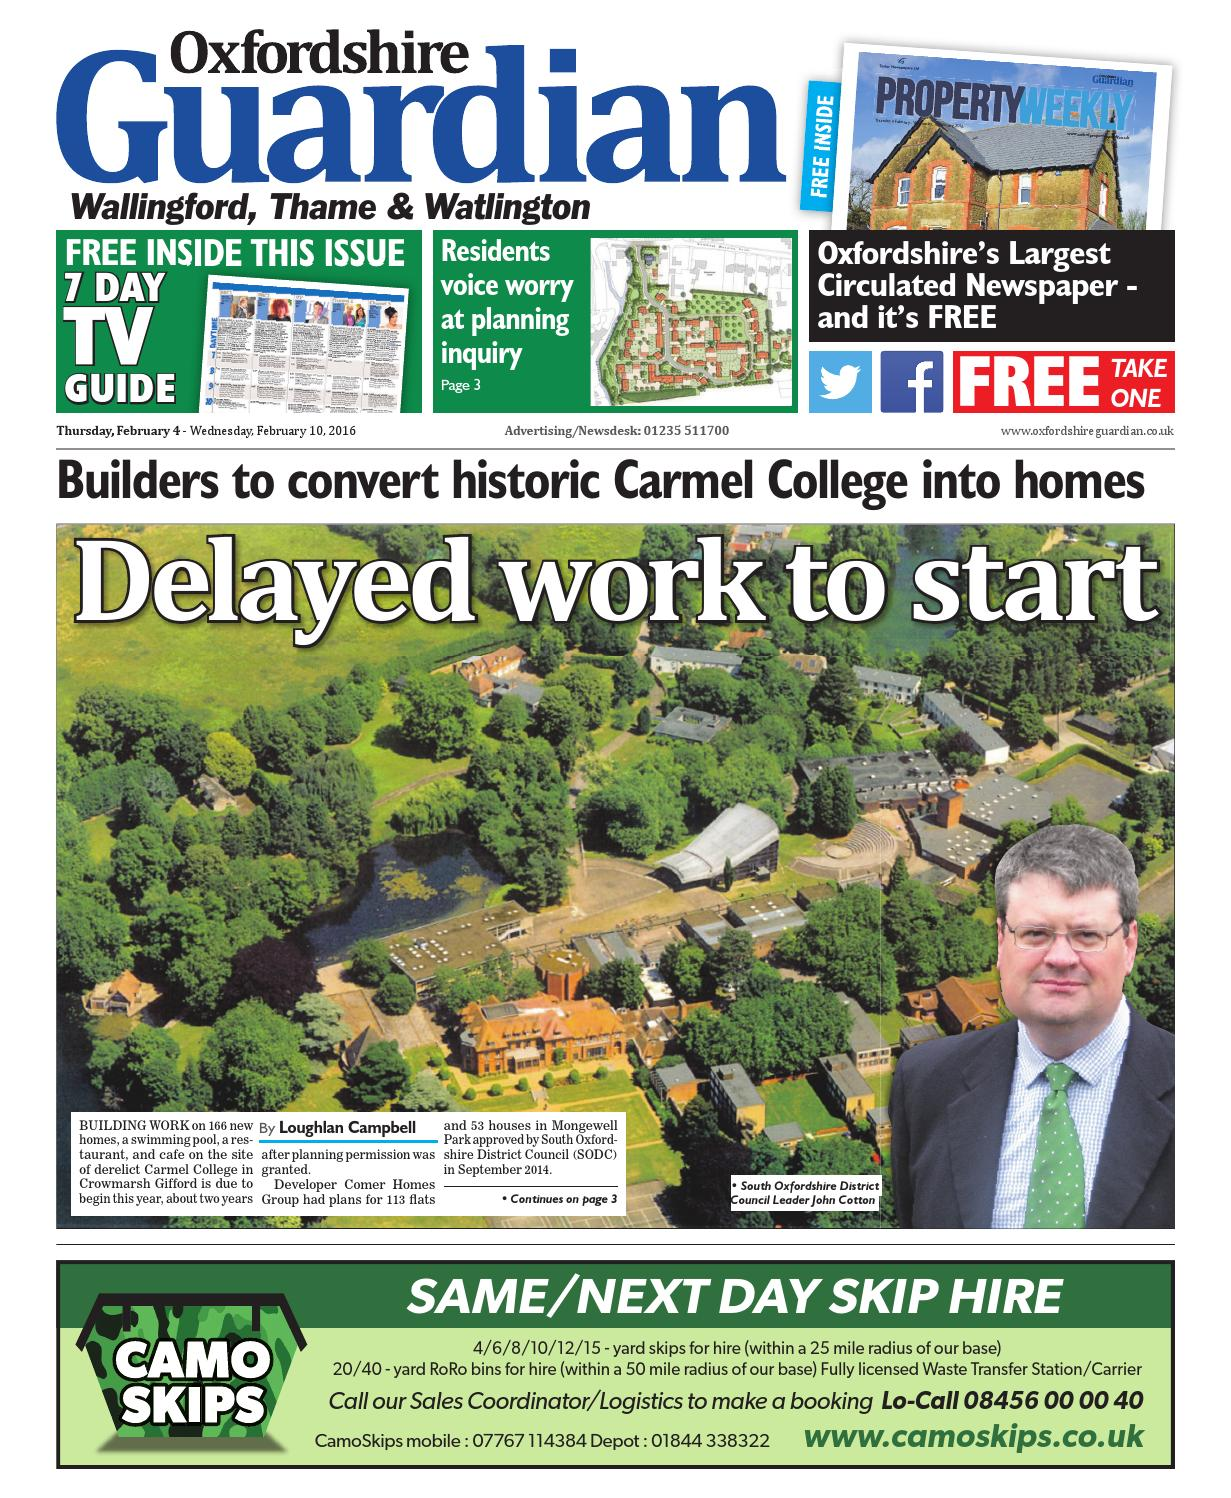 a152e1603 4 february 2016 oxfordshire guardian wallingford by Taylor Newspapers -  issuu